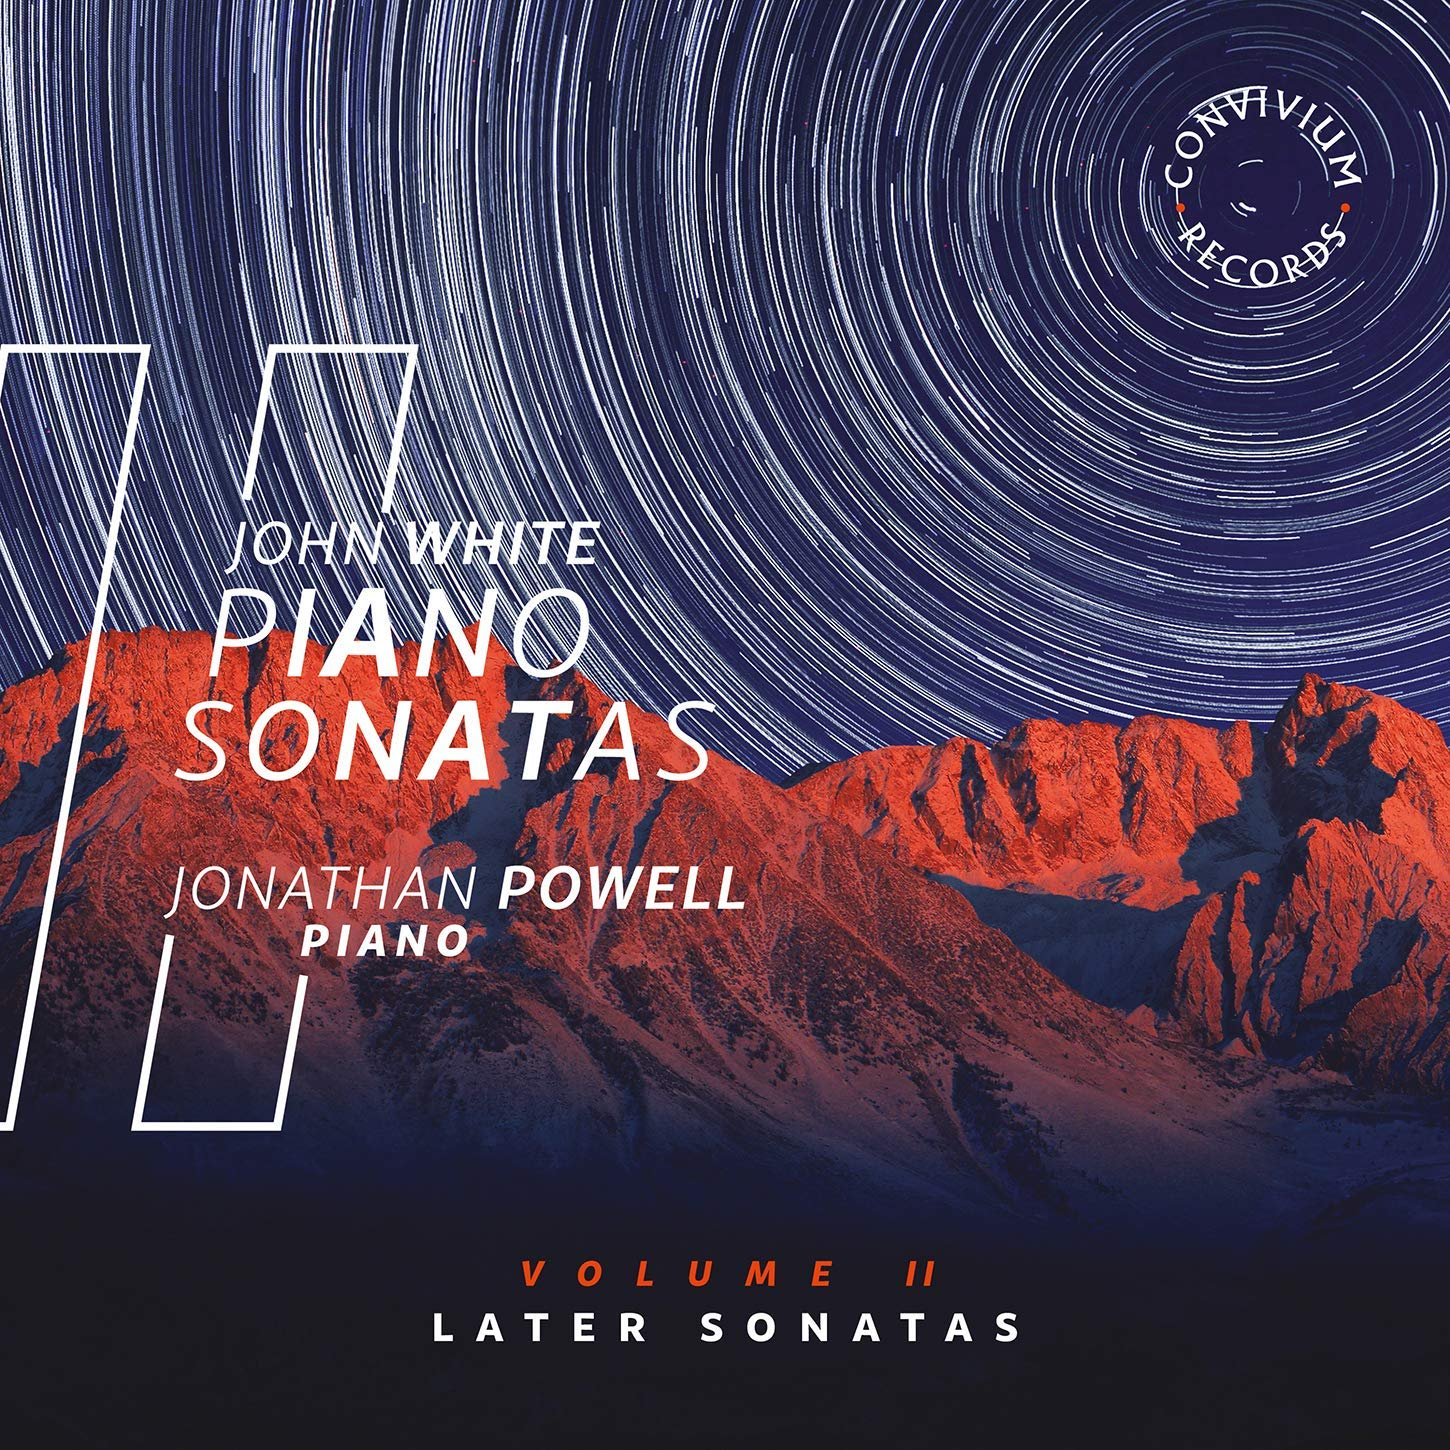 Review of WHITE Piano Sonatas Vol 2 (Jonathan Powell)